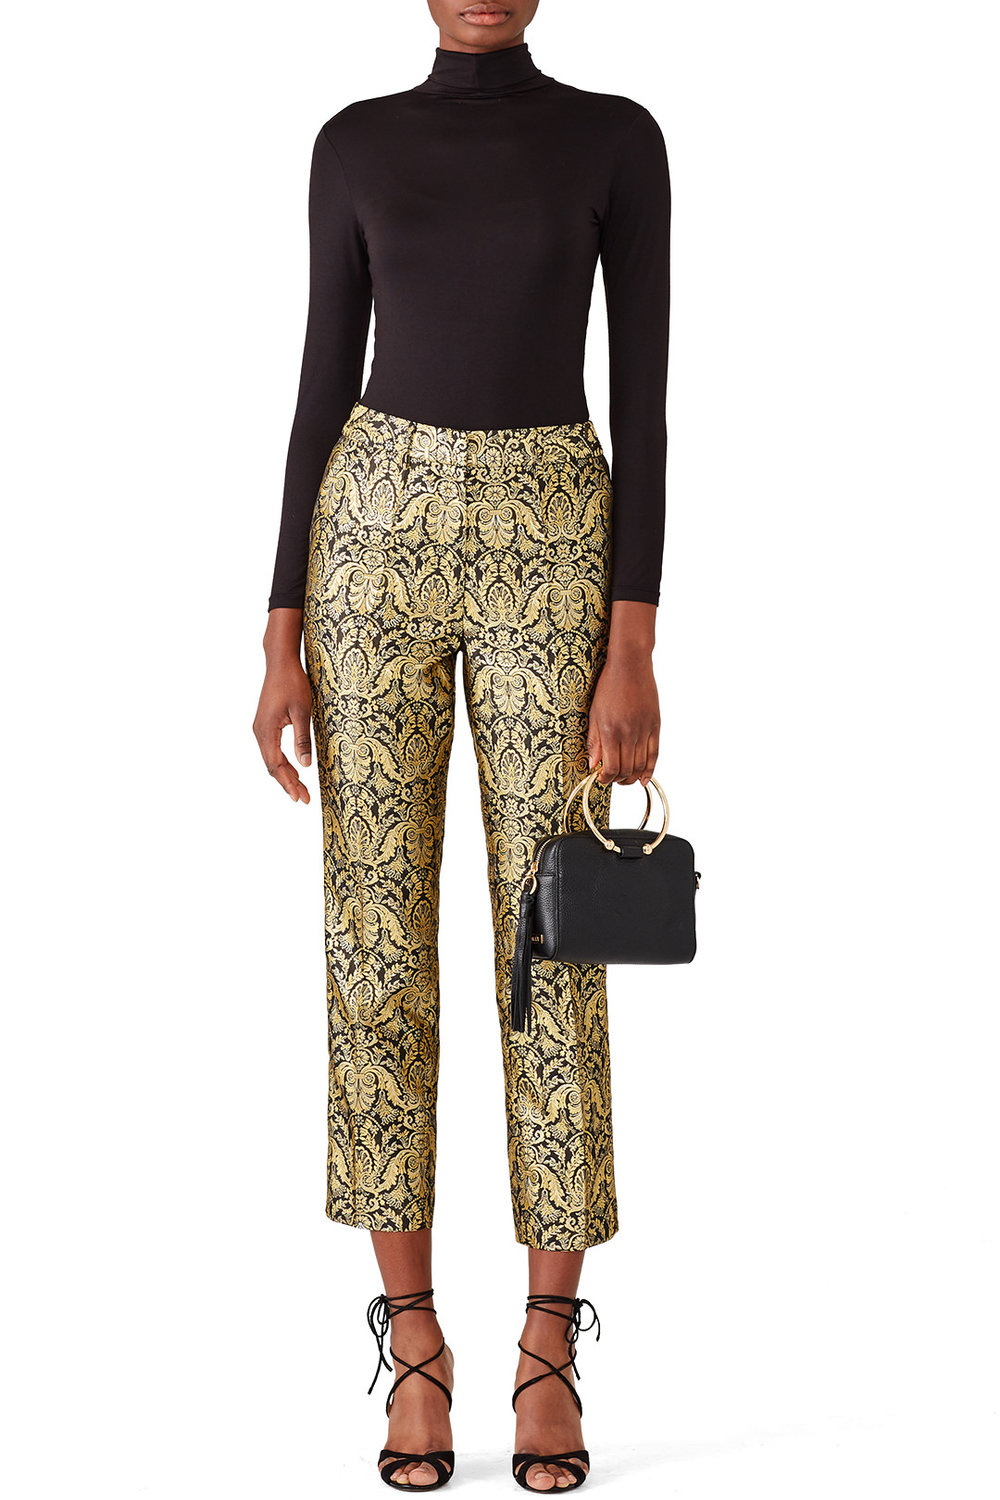 Slate & Willow Orion Cigarette Pant - These scream holiday office party